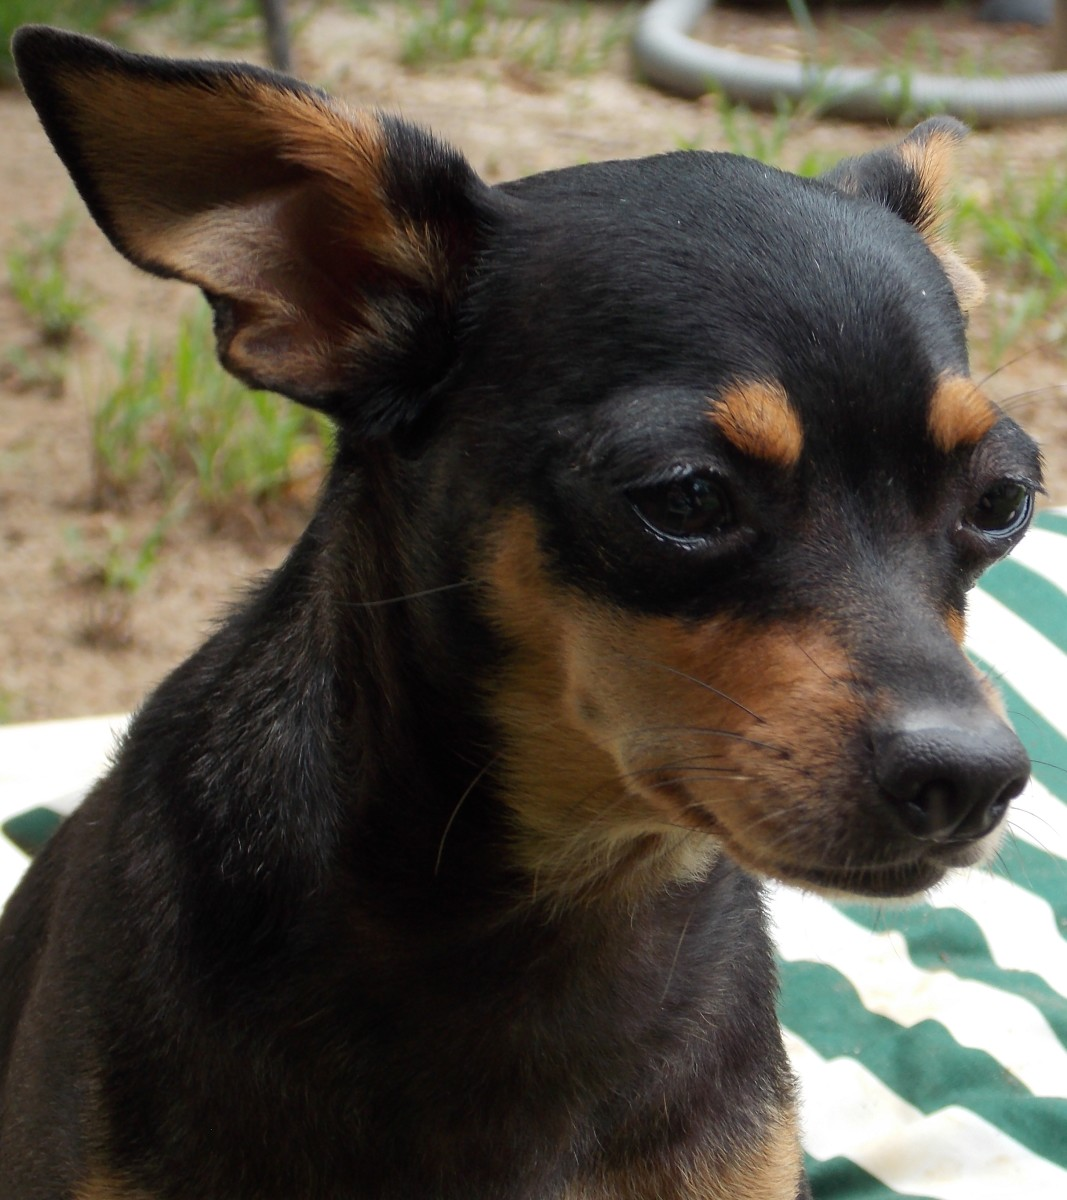 The Deer Head Chihuahua, longer snout and less rounded forehead